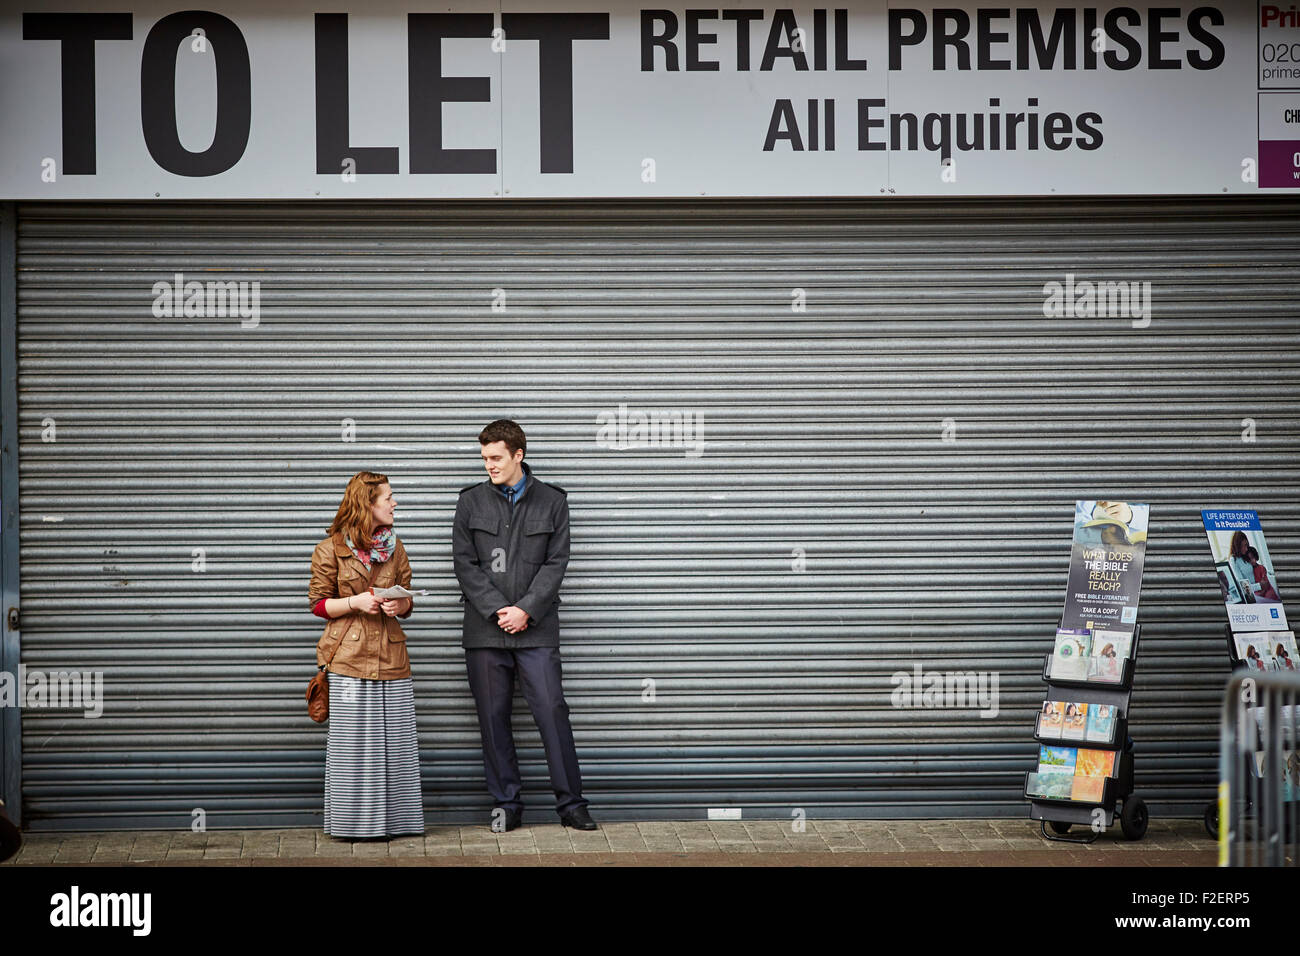 Bolton town centre to let shop space with shutters down used as a space for religious people to hand out literature - Stock Image